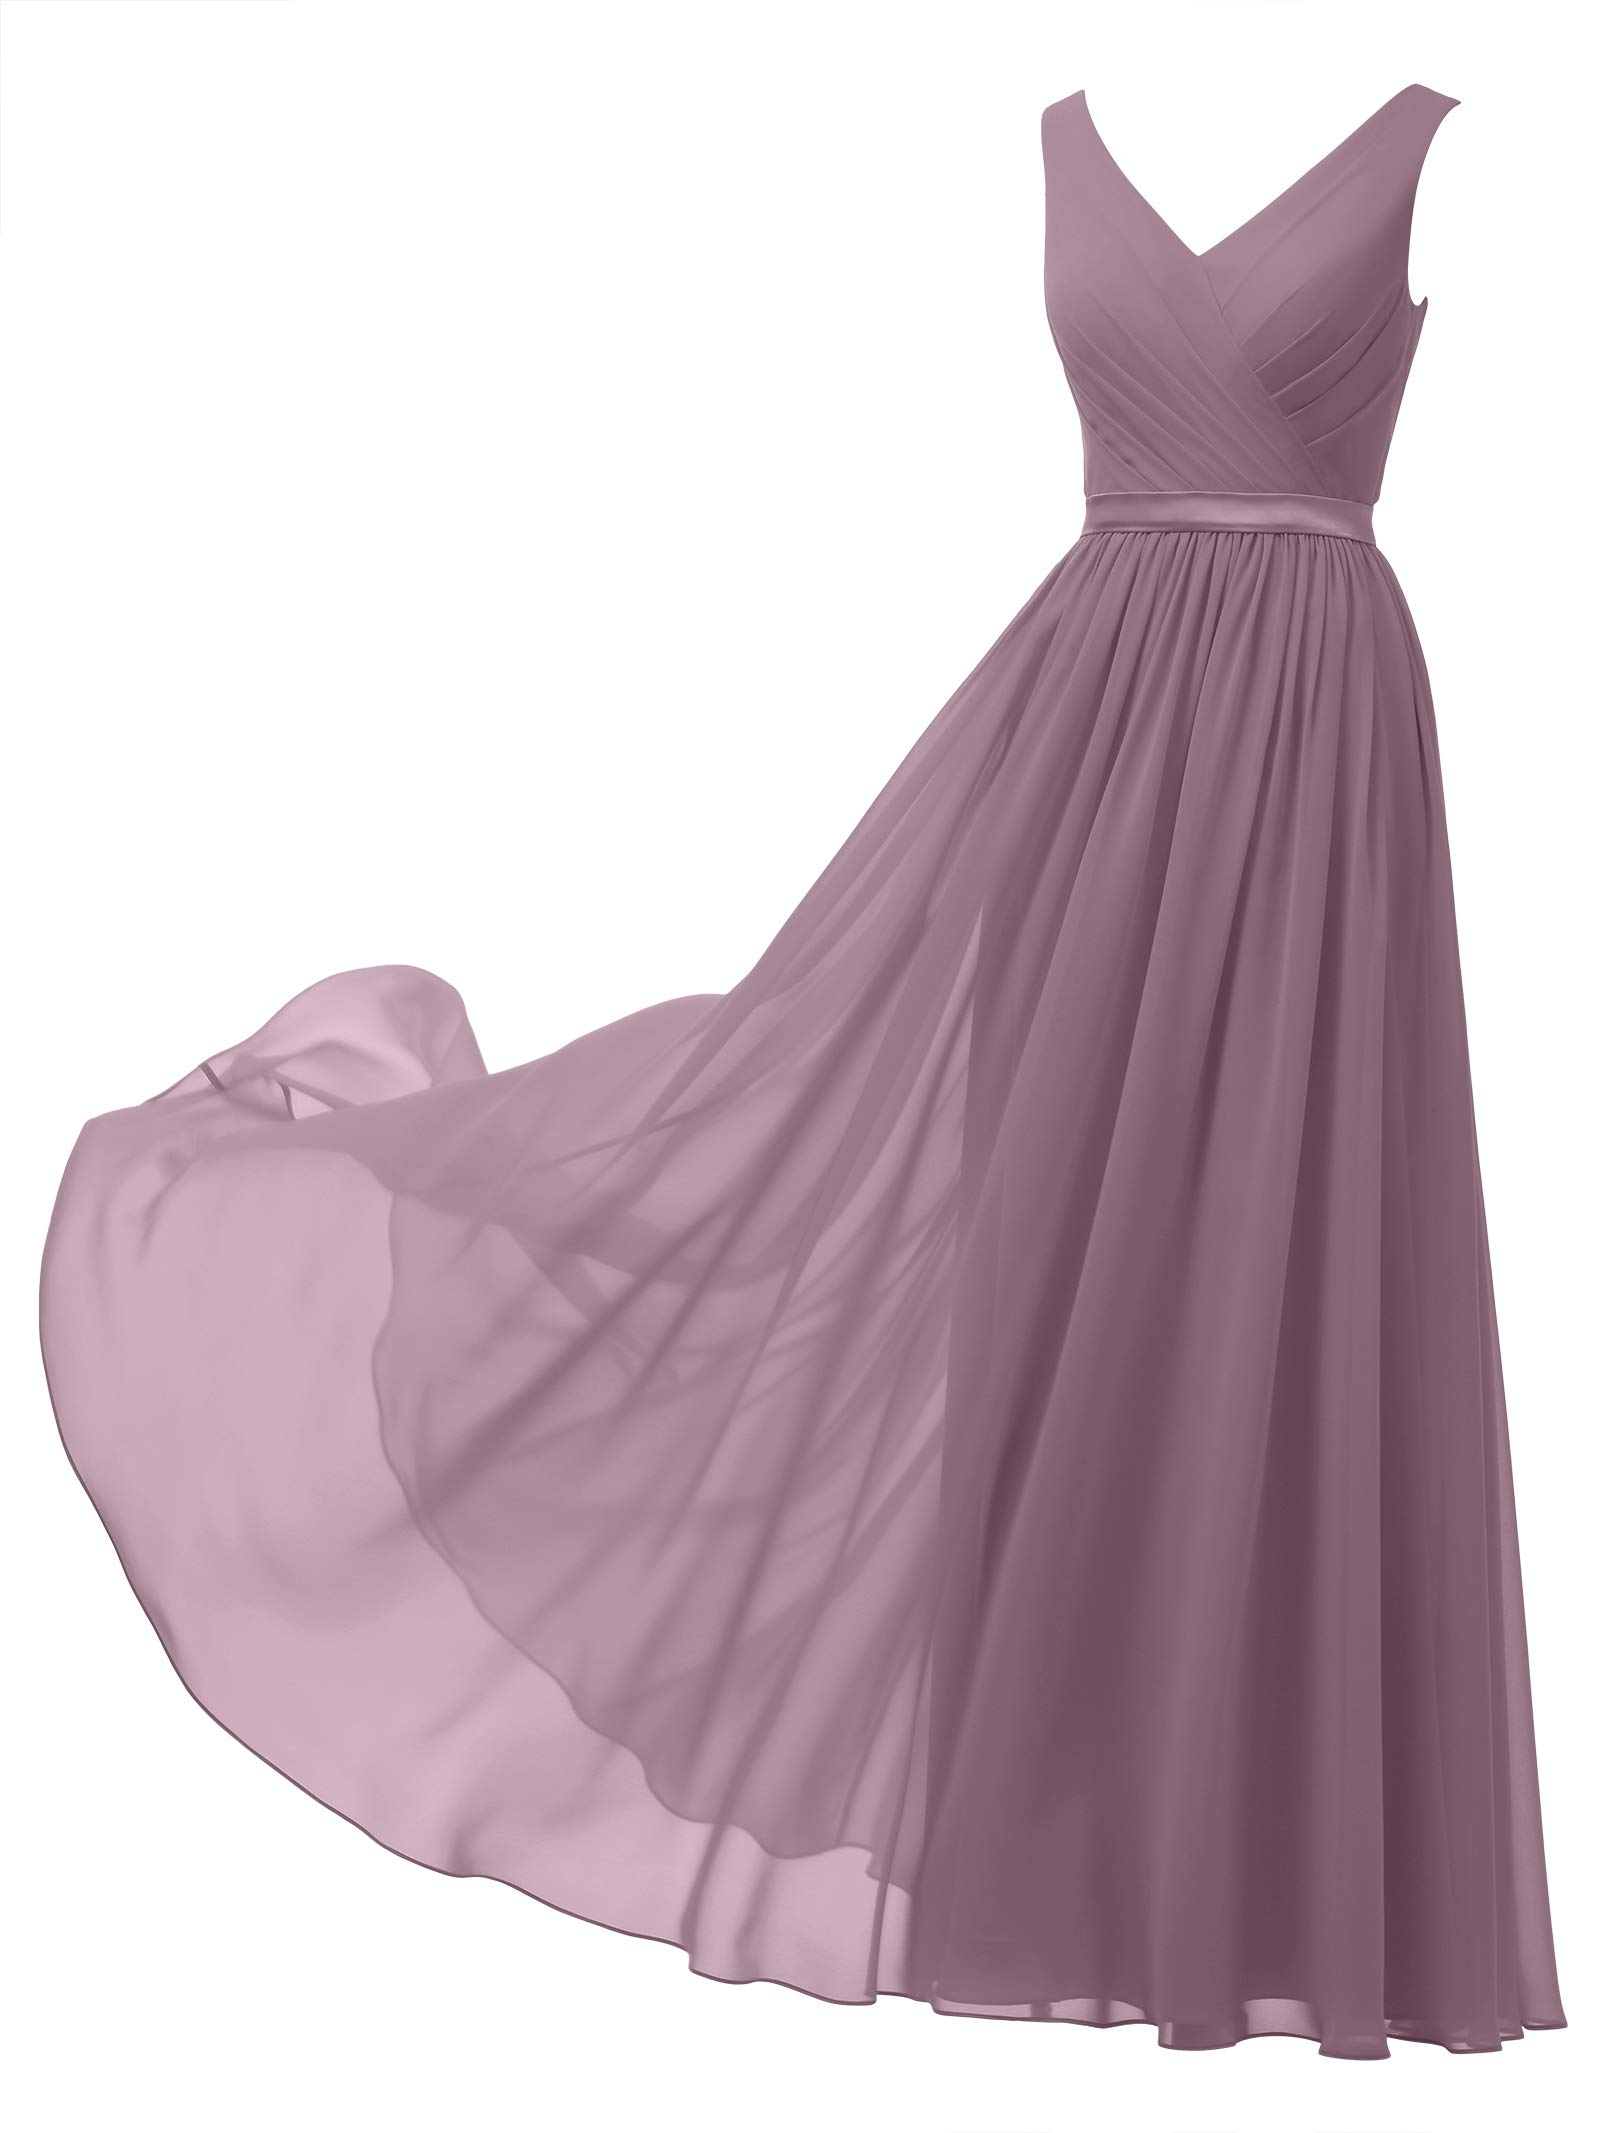 ae7c0ce47c09 Alicepub V-Neck Chiffon Bridesmaid Dress Long Party Prom Evening Dress  Sleeveless, Mauve Mist, US0